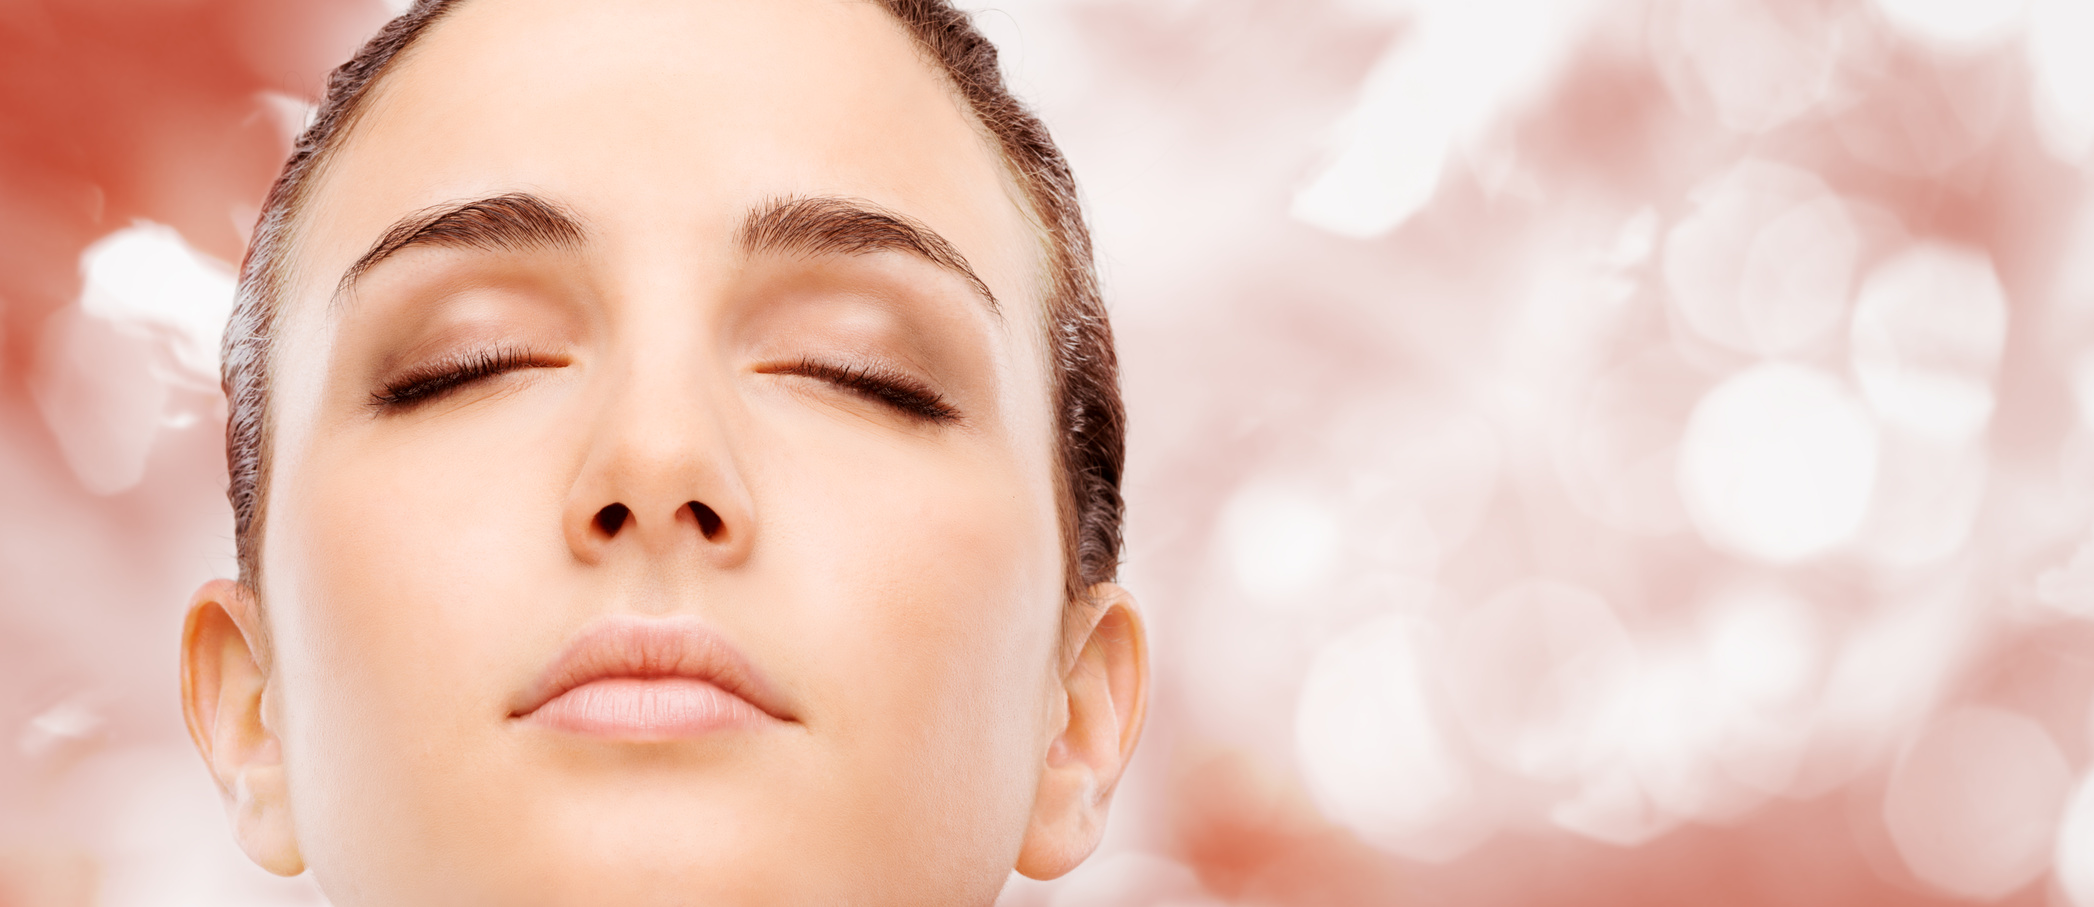 8-Simple-Steps-to-Preserve-a-Fresh-Skin-at-Any-Age